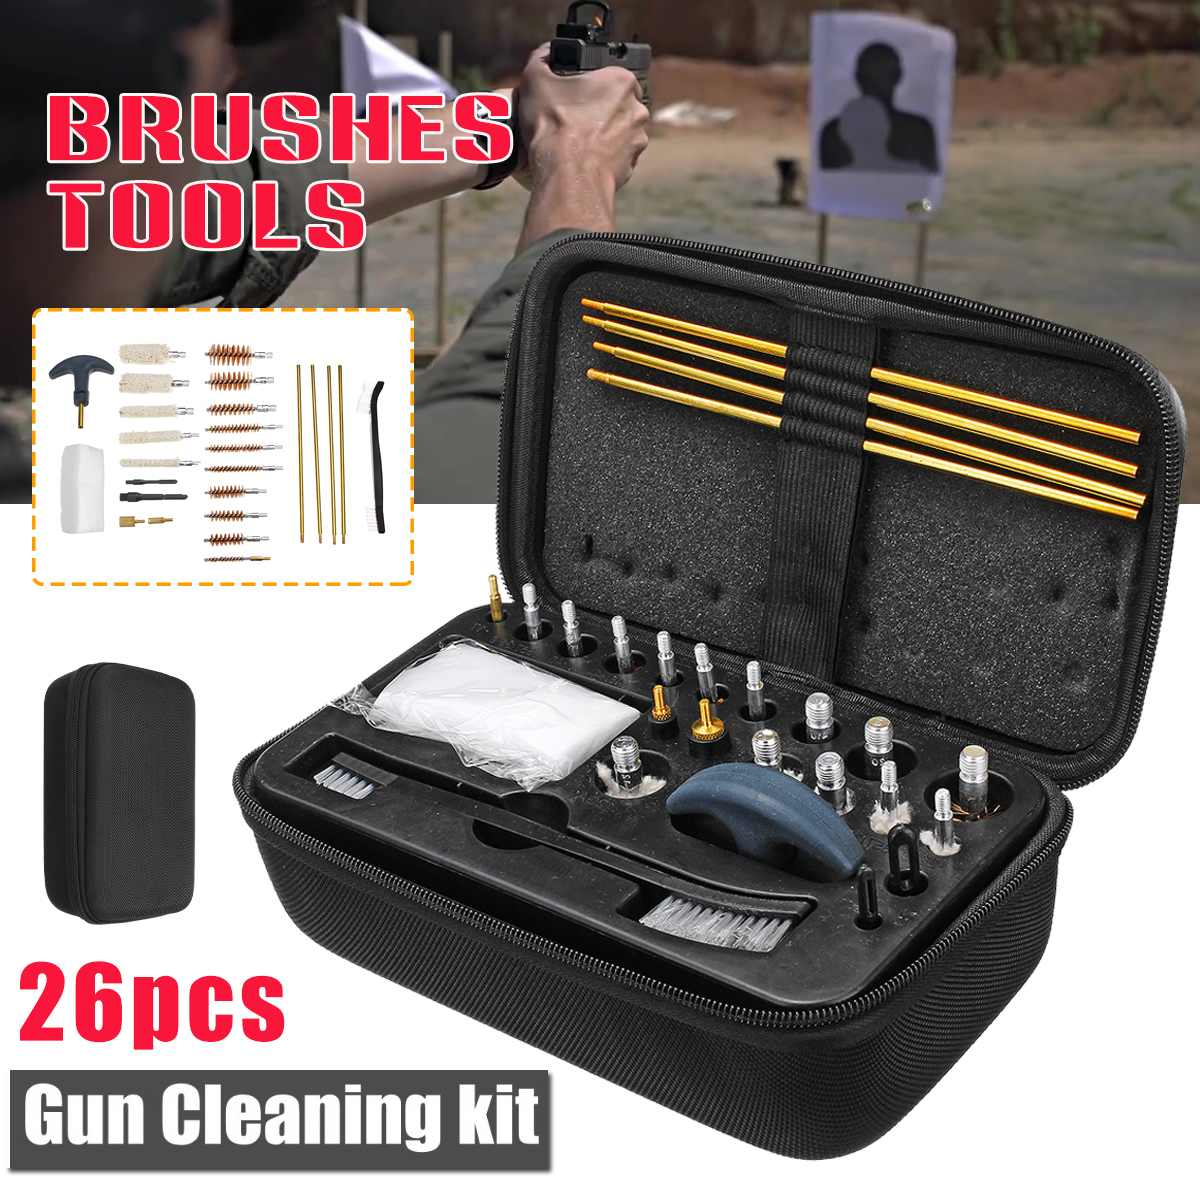 Universal Gun Cleaning Kit For Rifle Pistol Handgun Shotgun Brush Tool Portable Guns